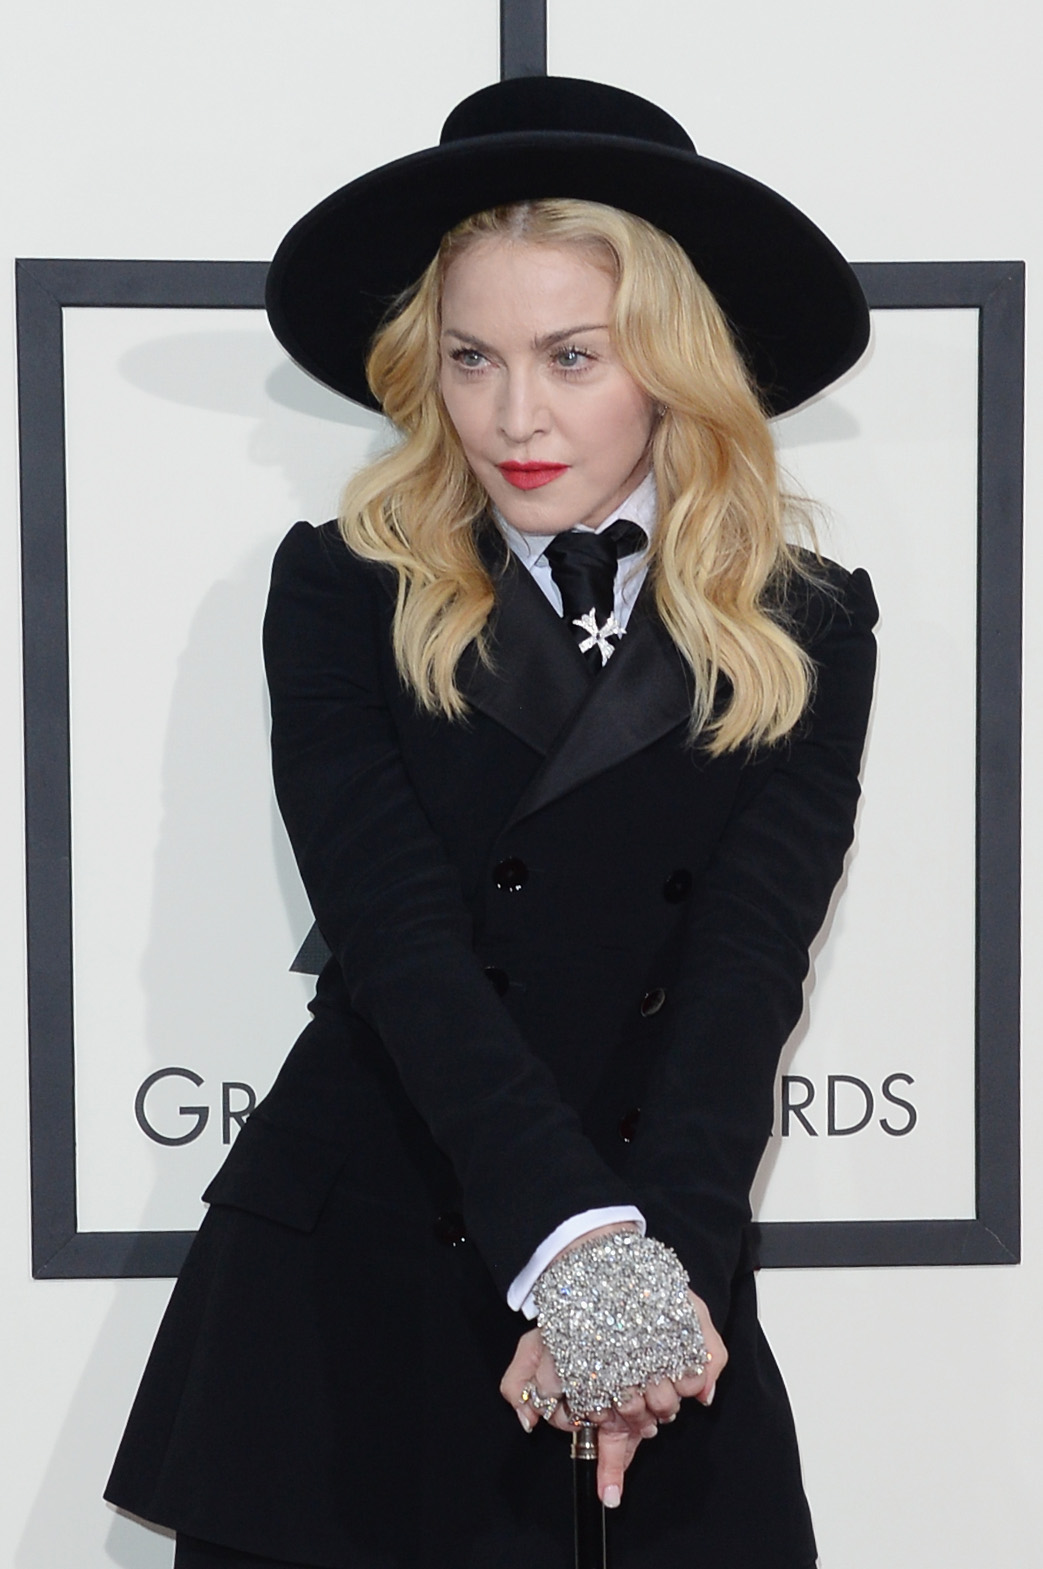 Madonnas Grill at the 2014 Grammys Was Really Not Okay